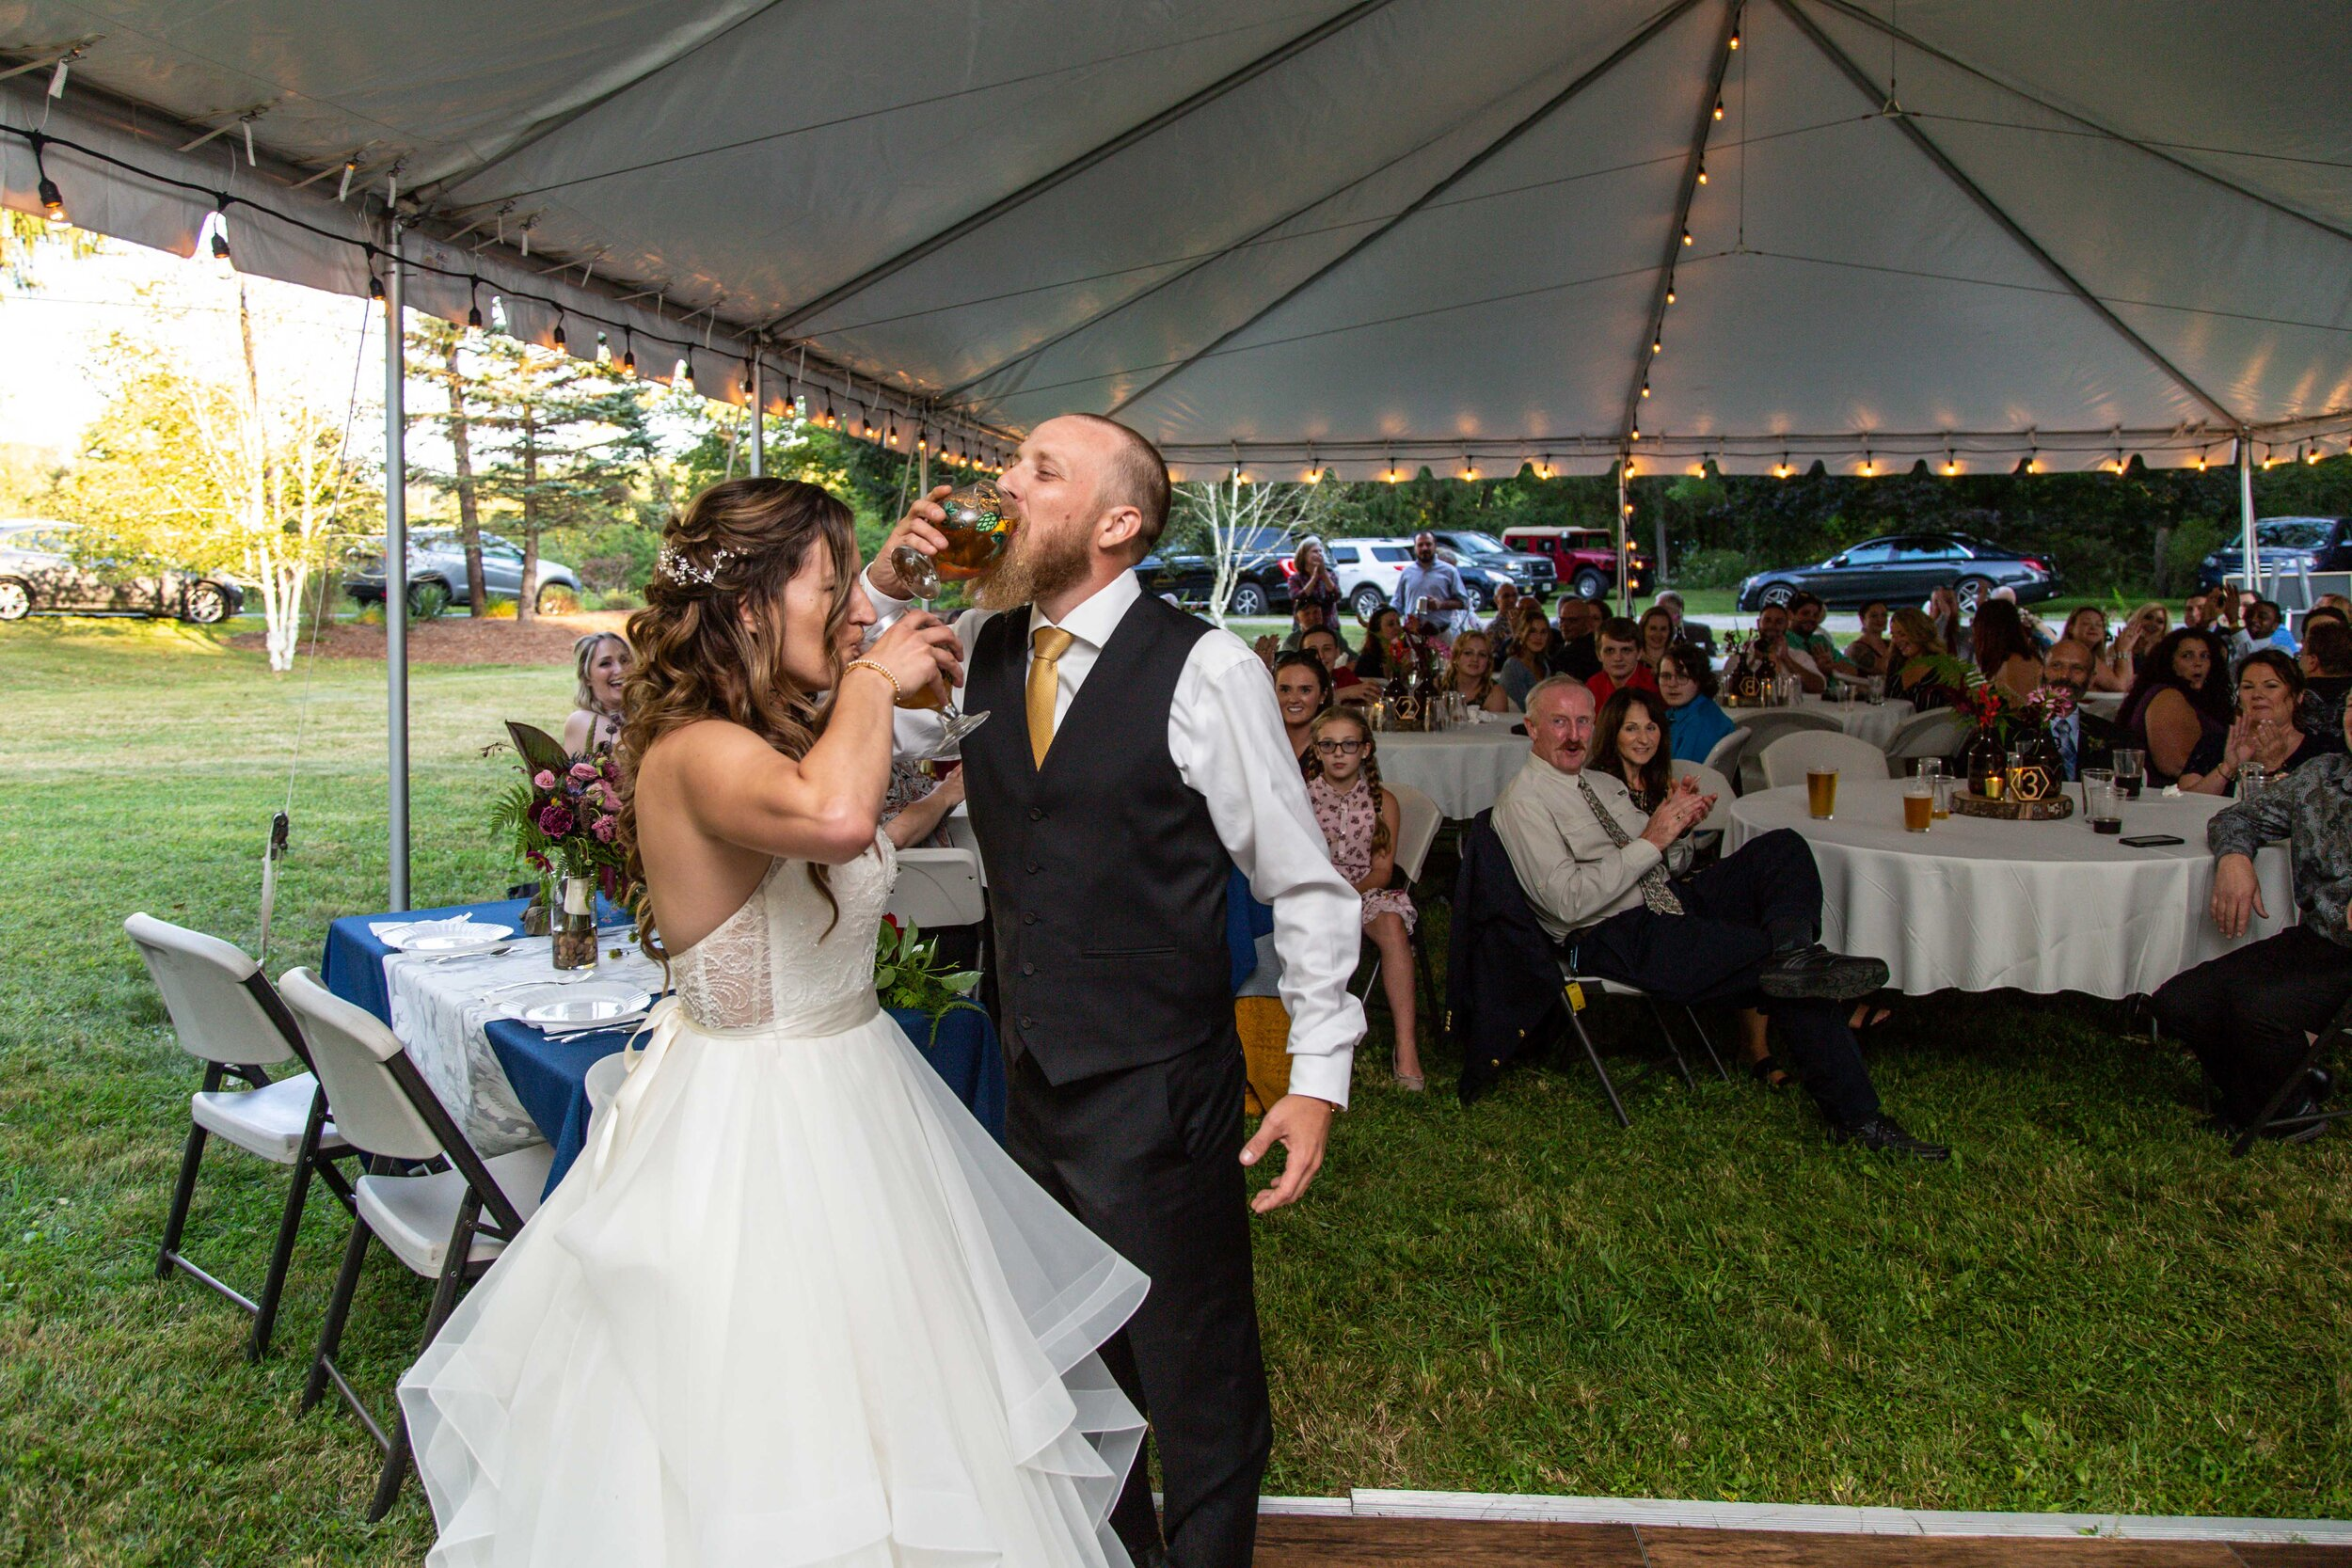 Backyard Homebrew Wedding in Branchville NJ by Dan Schenker Photography-55.jpg